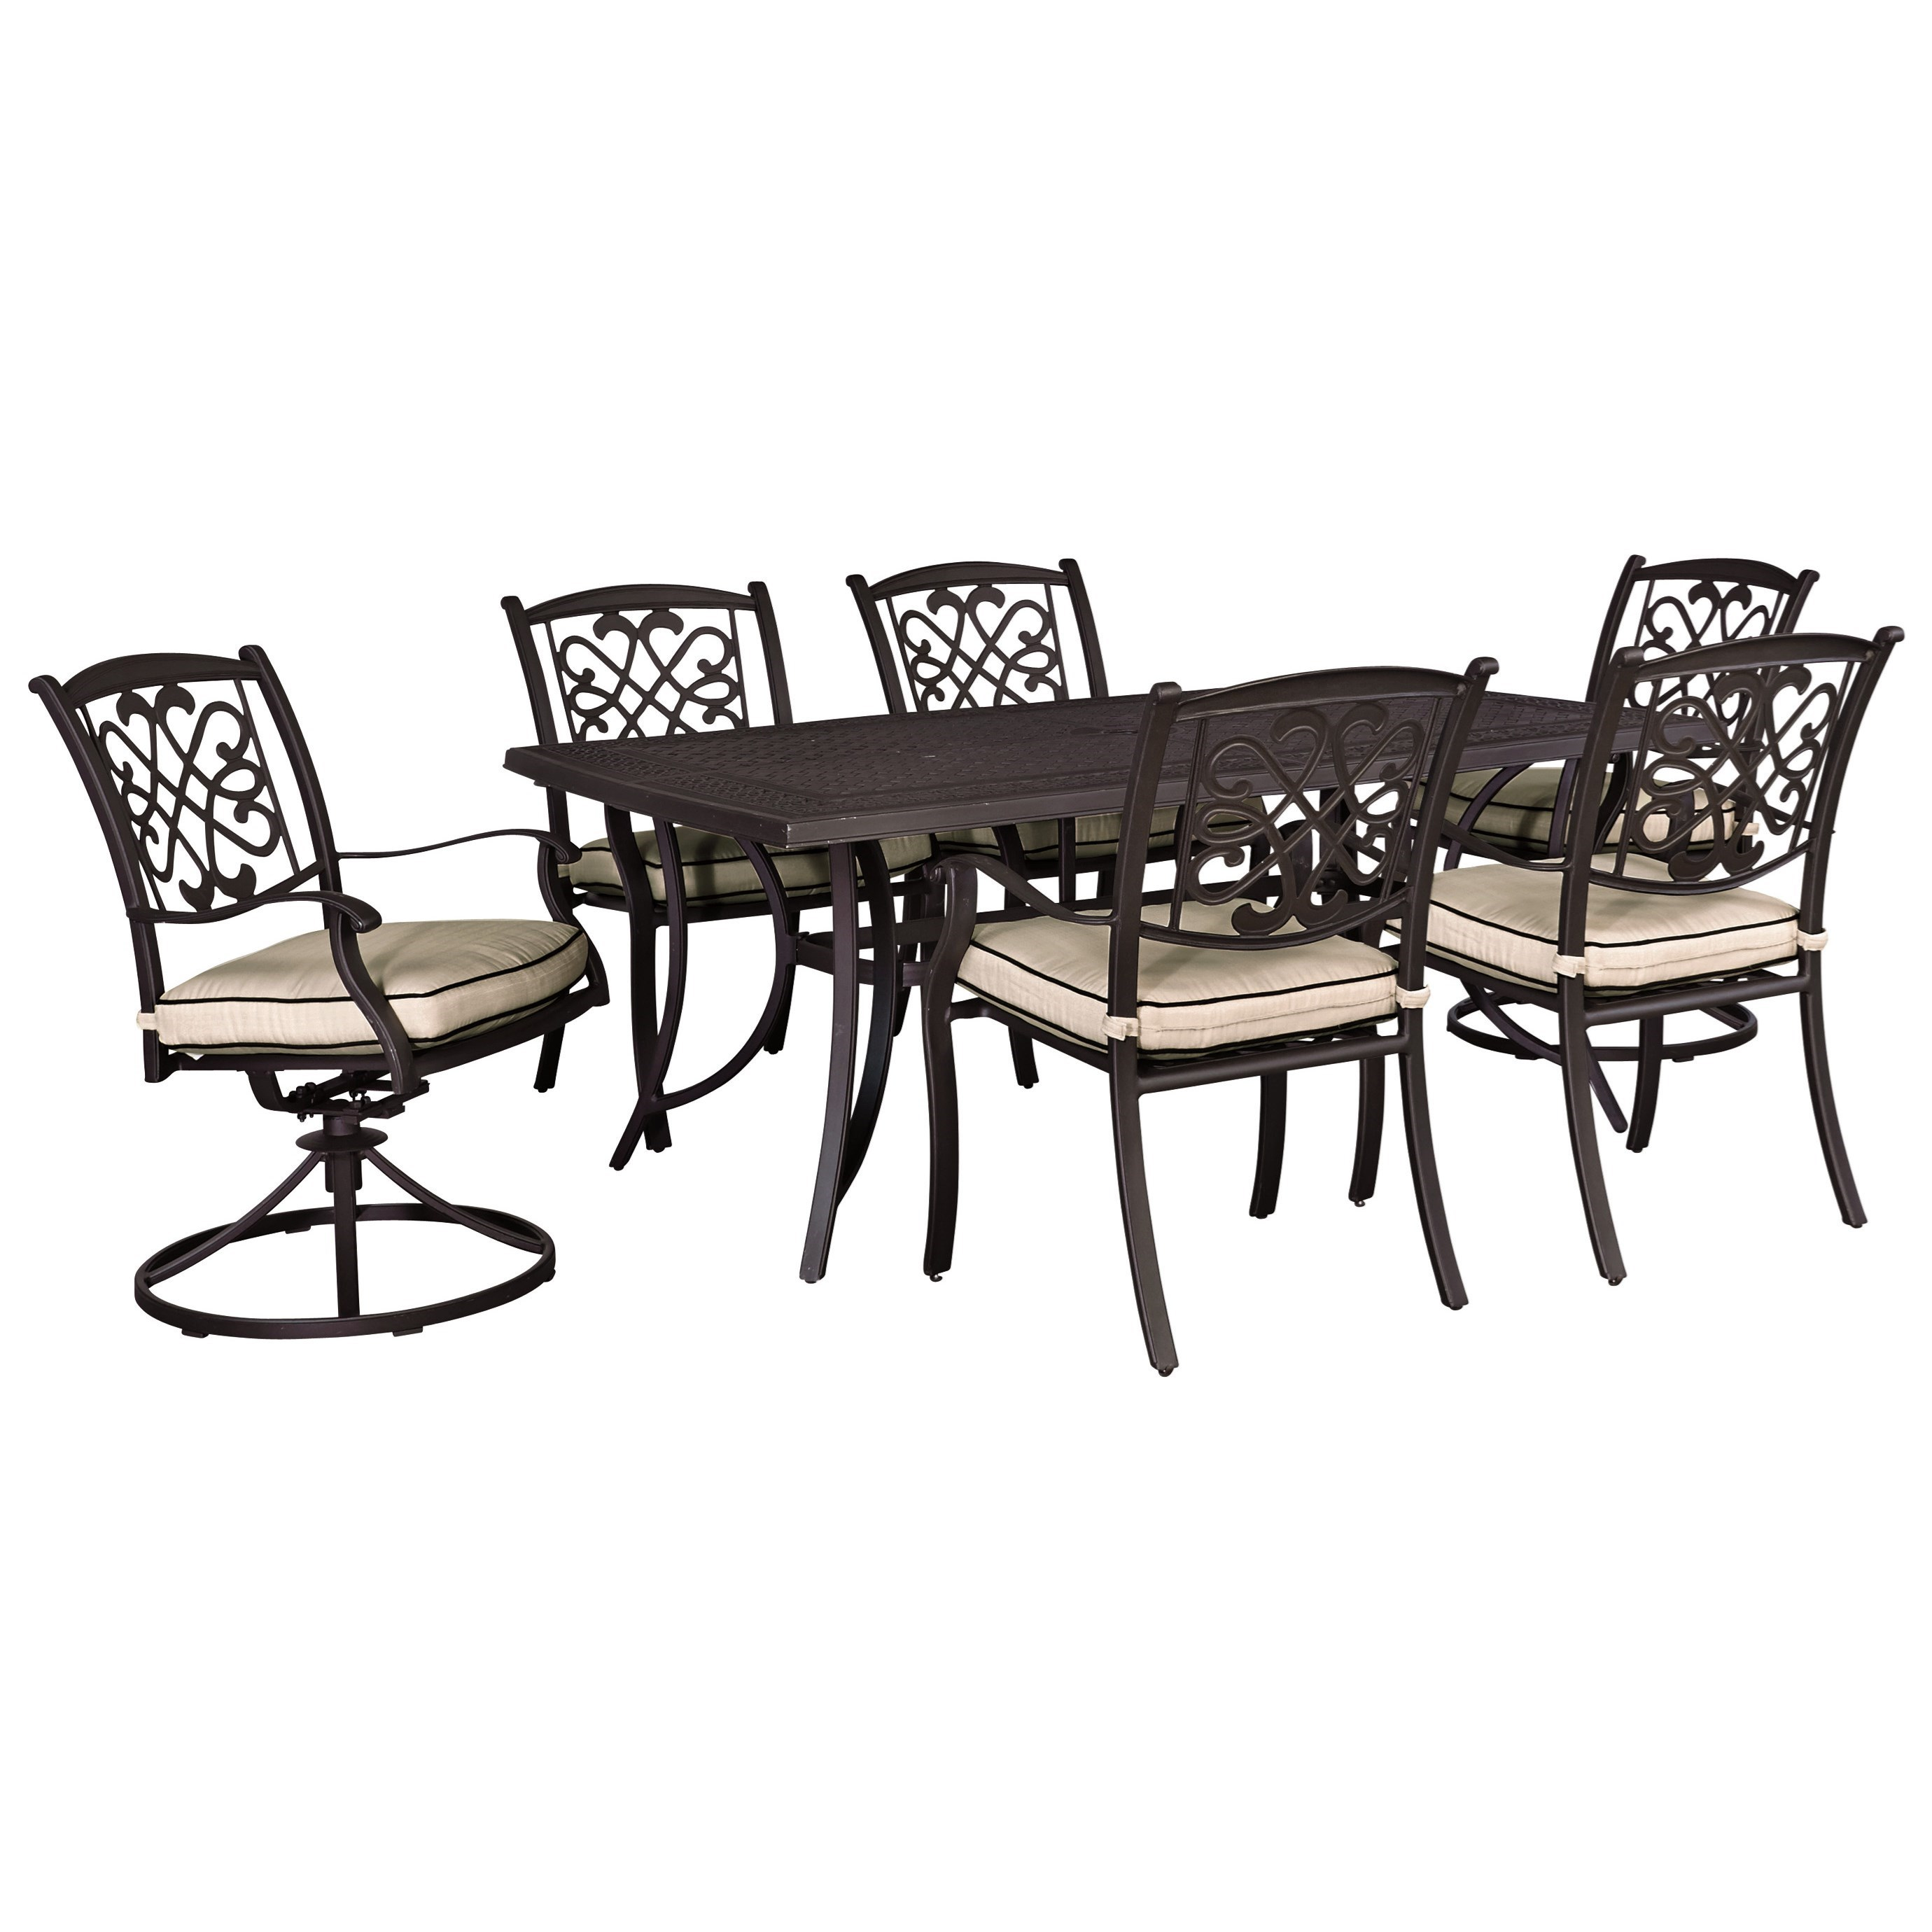 Signature Design by Ashley Burnella Outdoor Dining Set Household